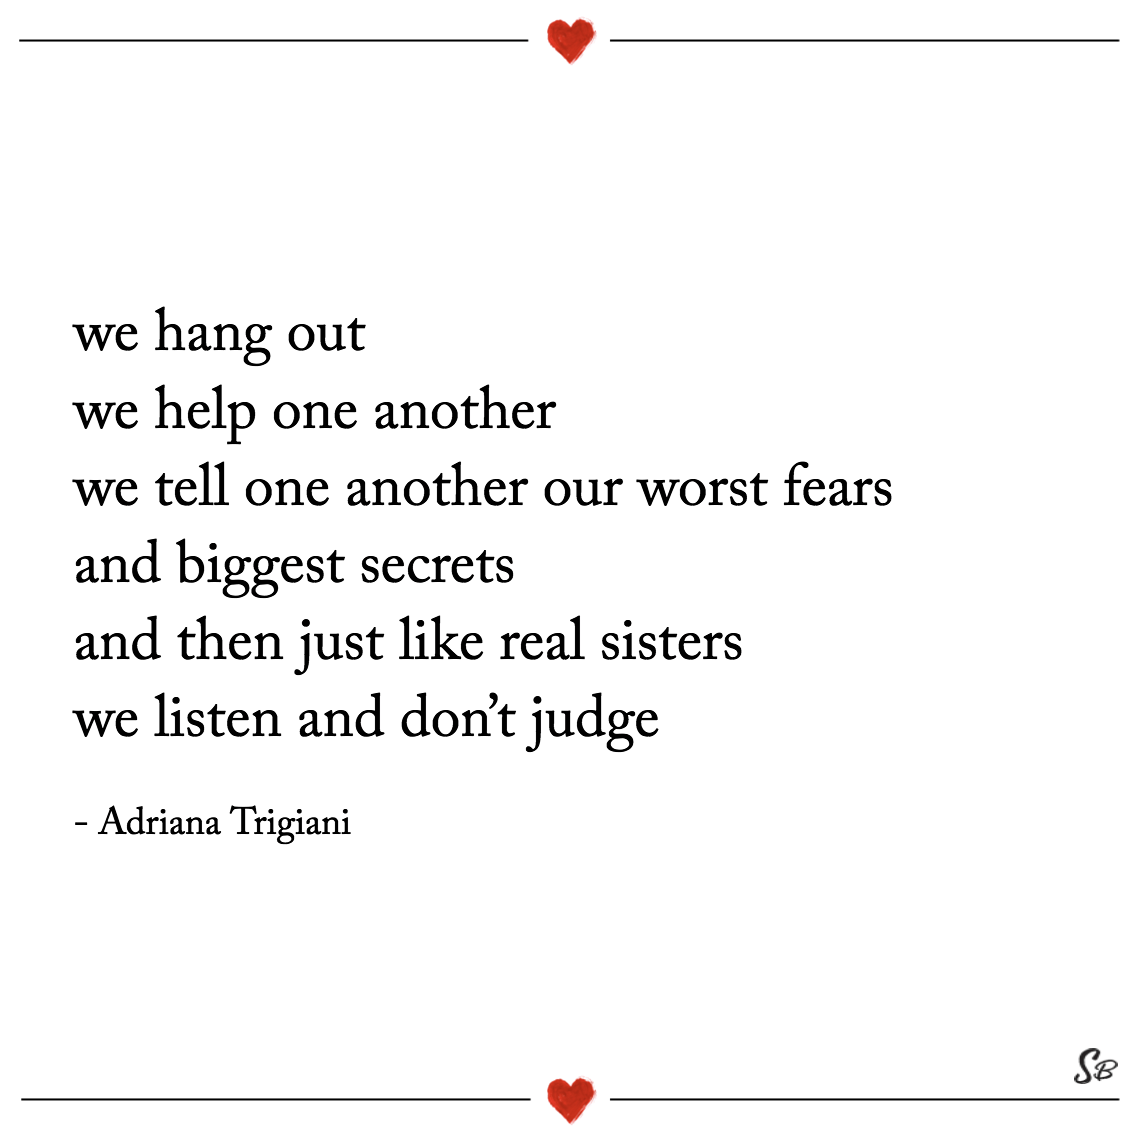 We hang out we help one another we tell one another our worst fears and biggest secrets and then just like real sisters we listen and don't judge adriana trigiani